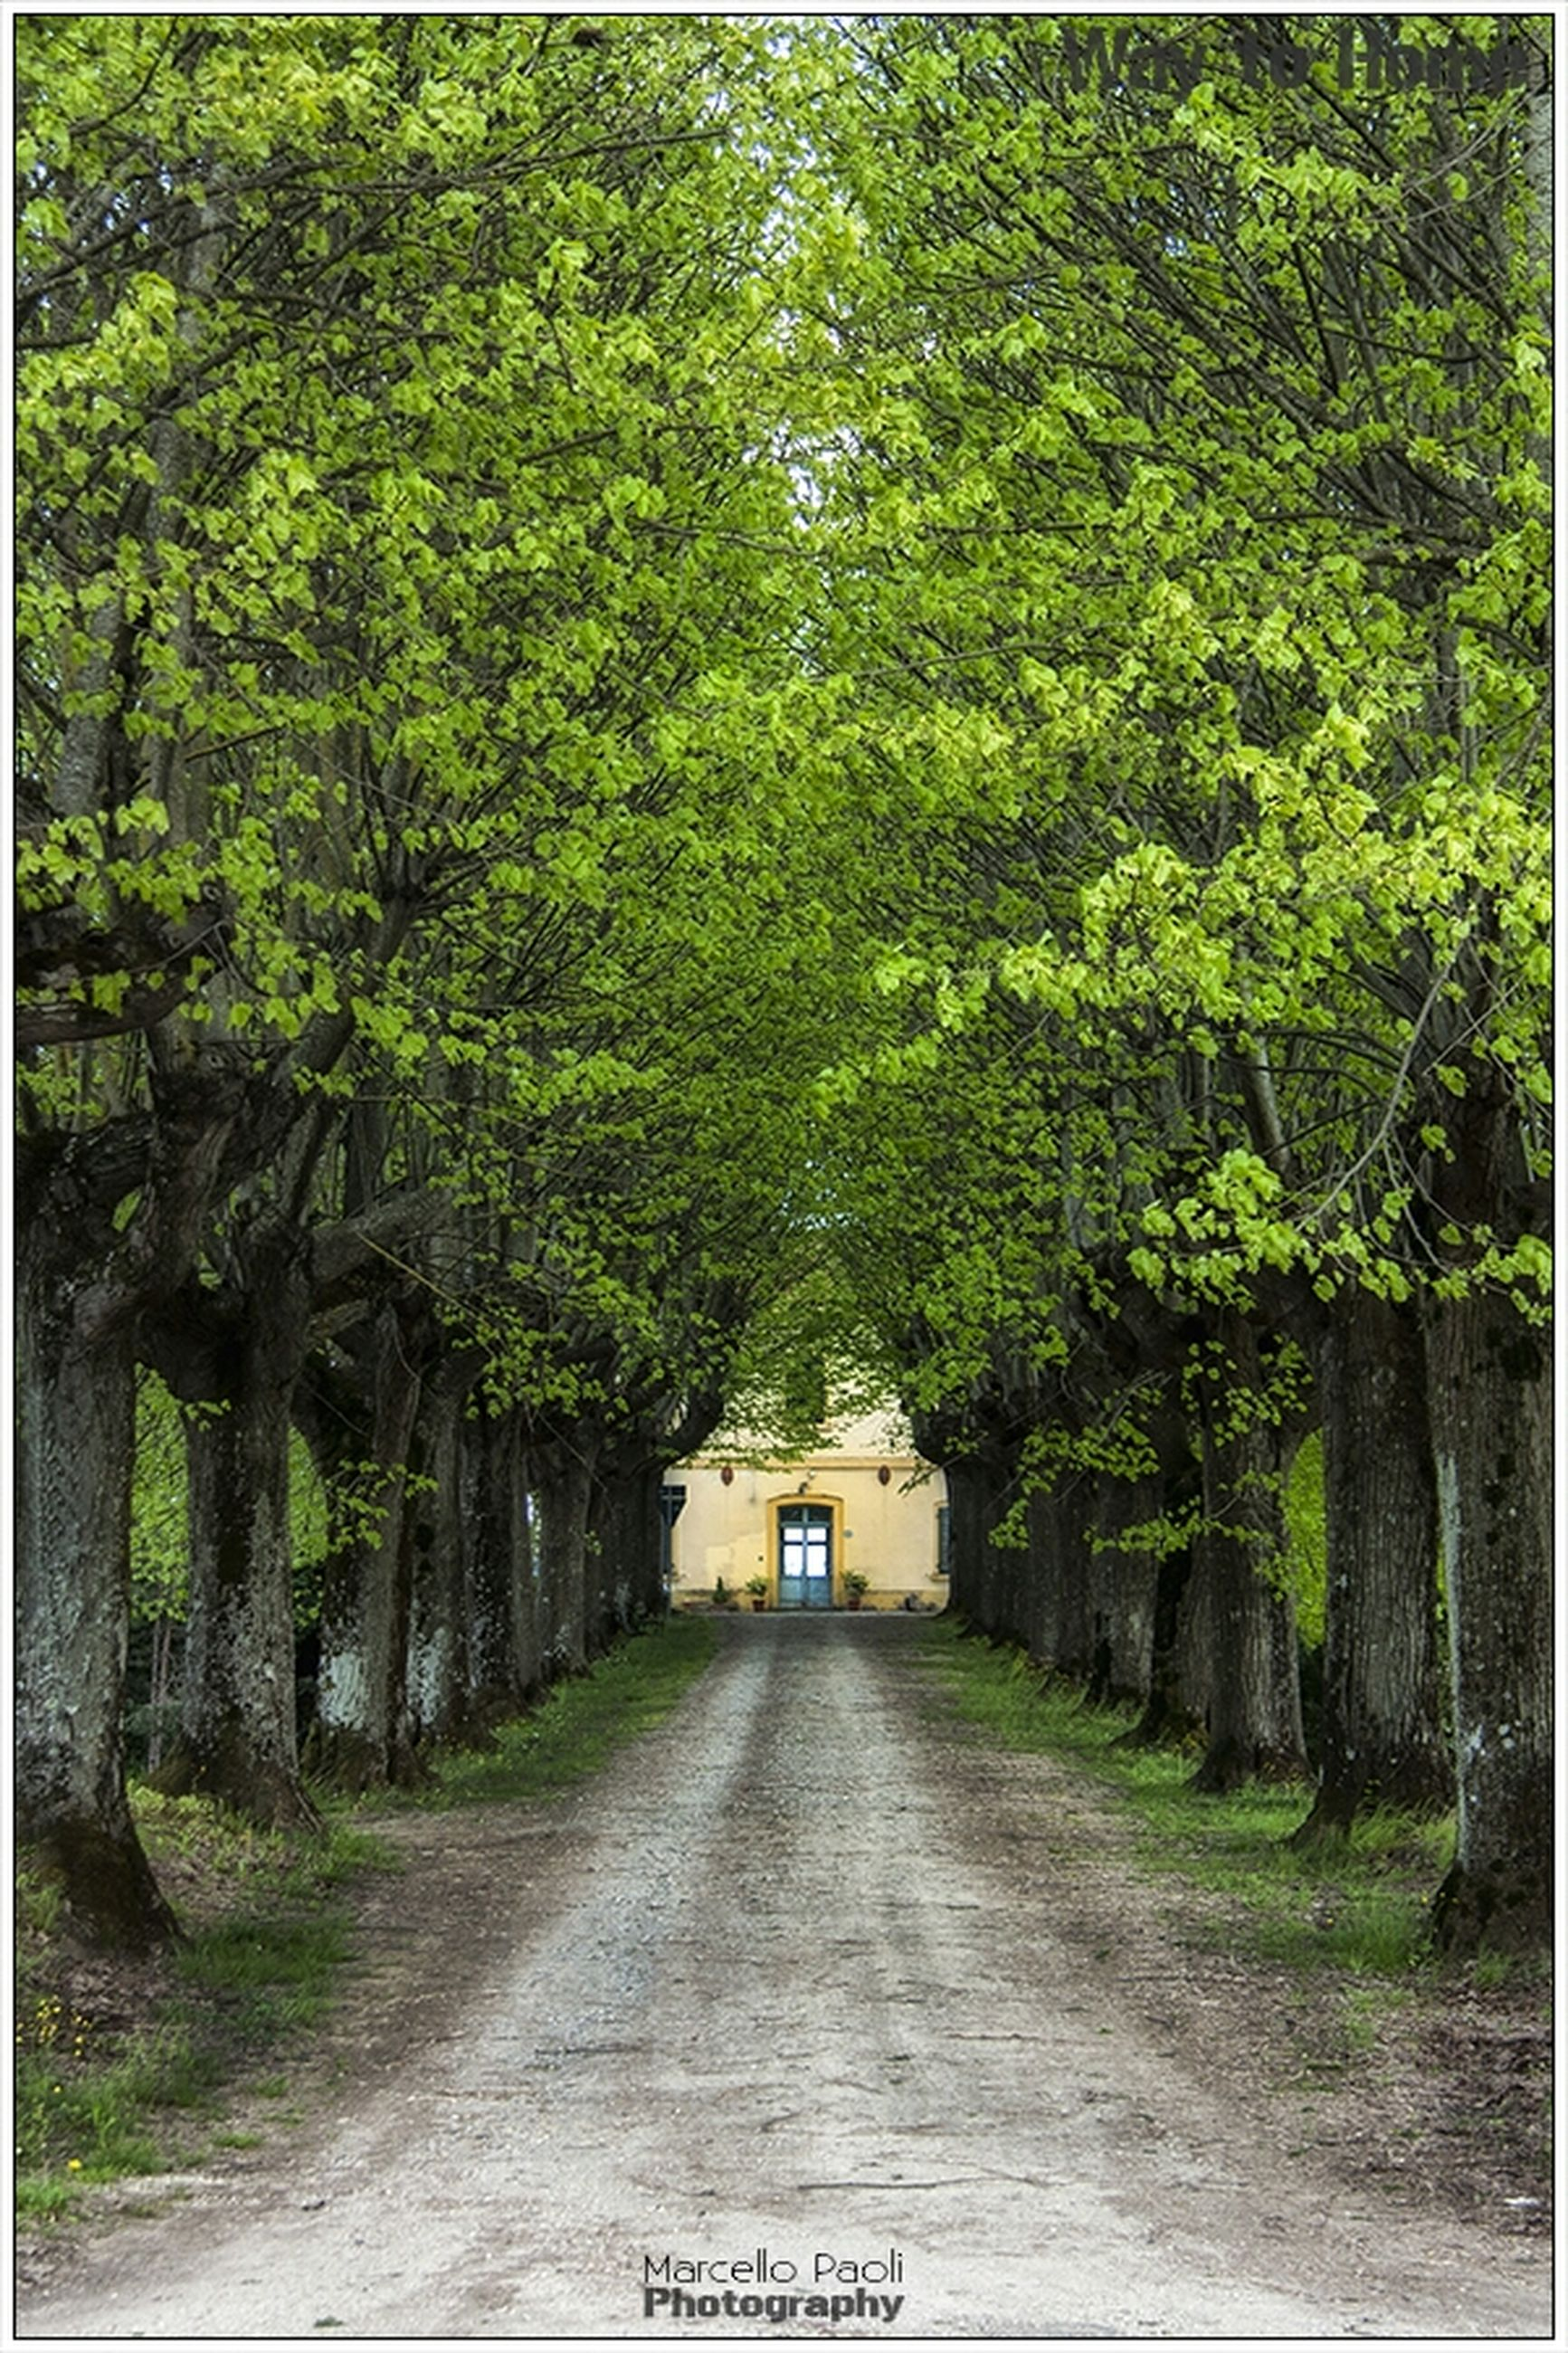 the way forward, tree, transfer print, diminishing perspective, growth, green color, vanishing point, auto post production filter, footpath, empty, road, transportation, nature, plant, narrow, tranquility, walkway, day, pathway, long